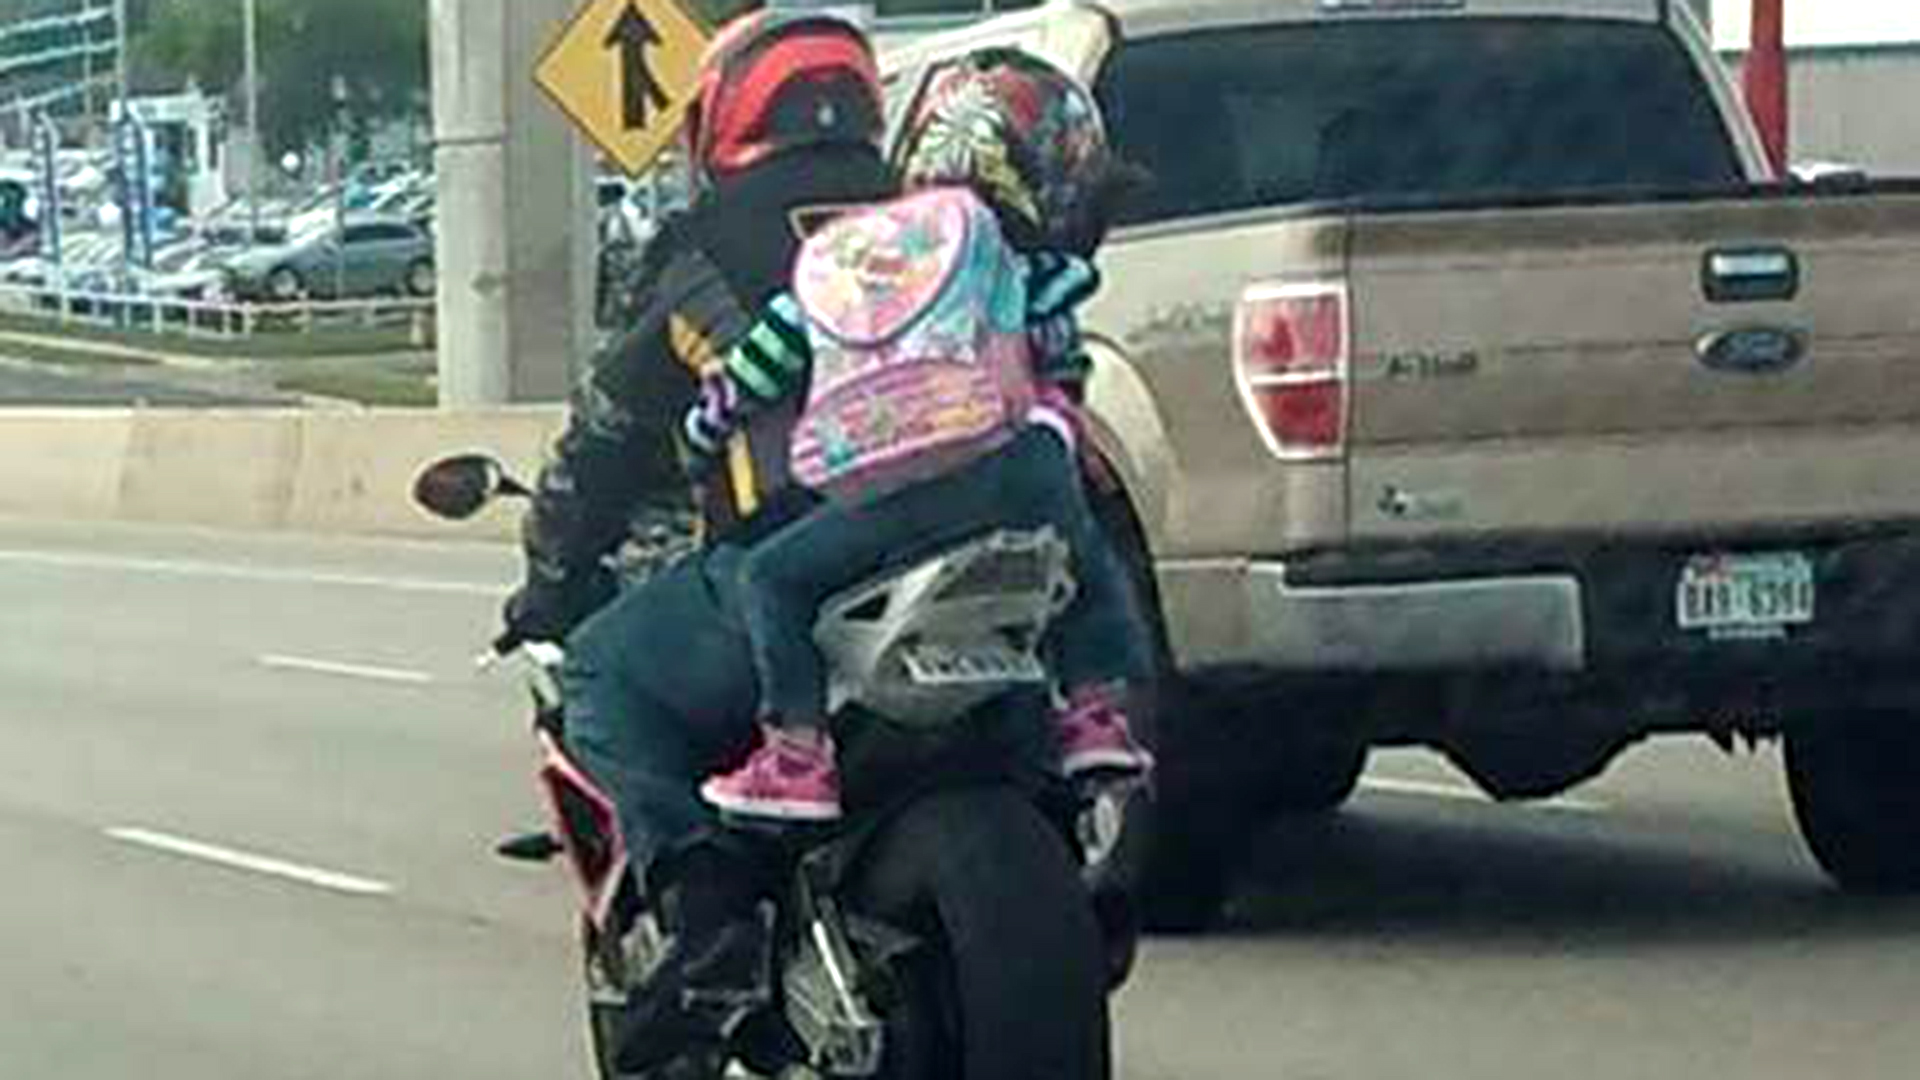 Mom responds to critics of 7-year-old riding motorcycle - TODAY.com